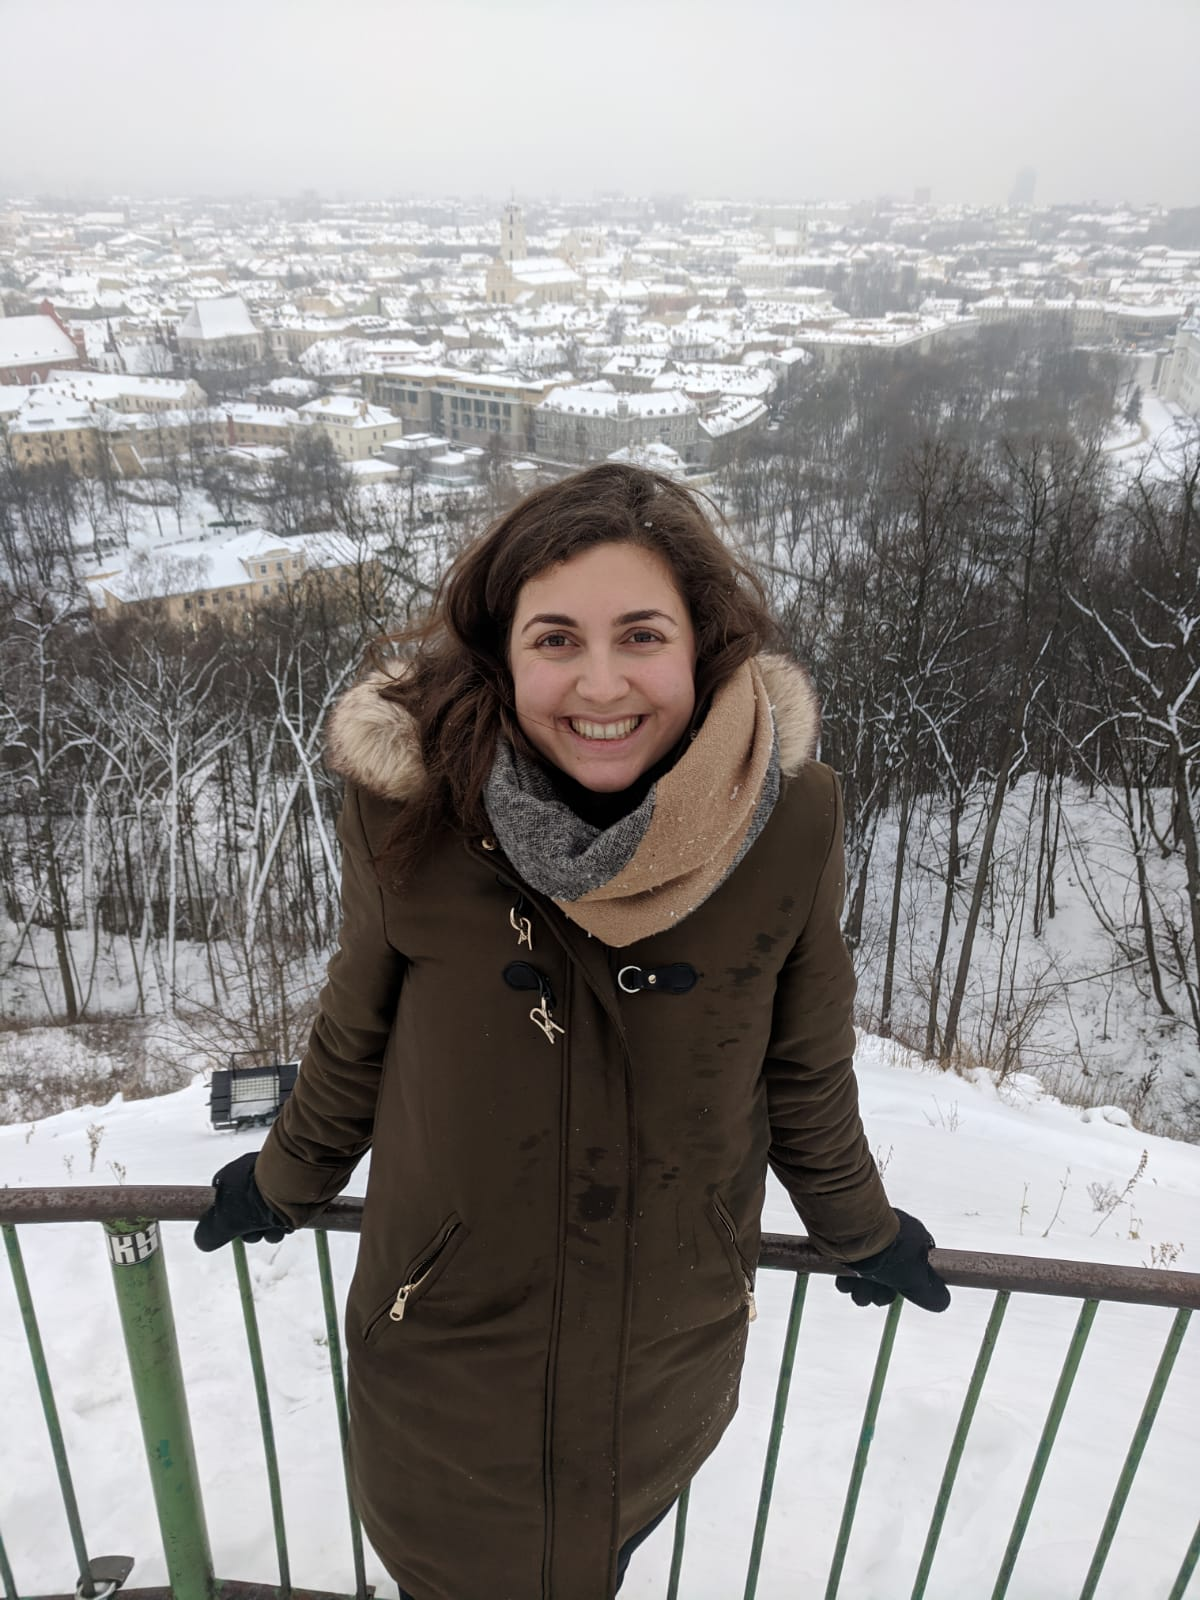 cheap european city break - Nell in snowy Vilnius, smiling at the camera at the top of a hill with the snowy city below.